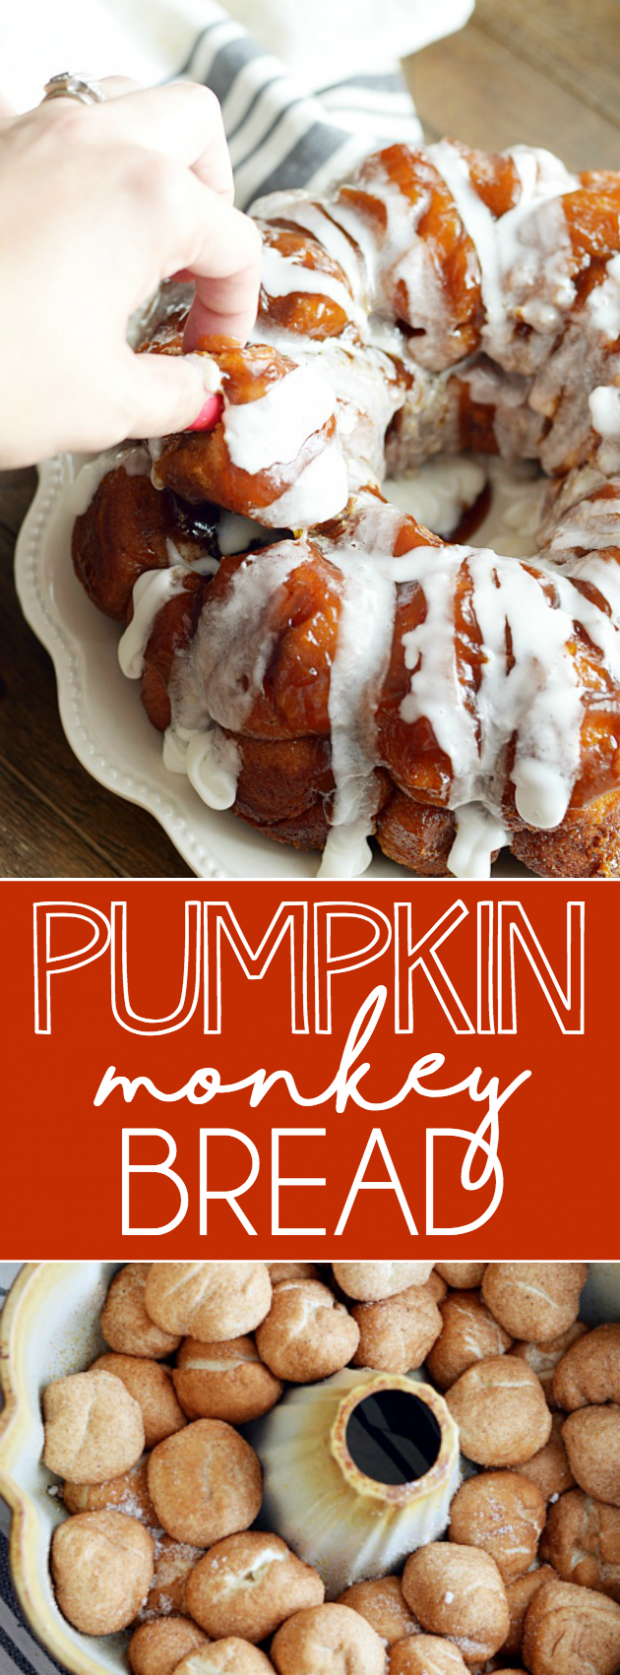 This easy pumpkin monkey bread melts in your mouth and is an instant crowd pleaser!